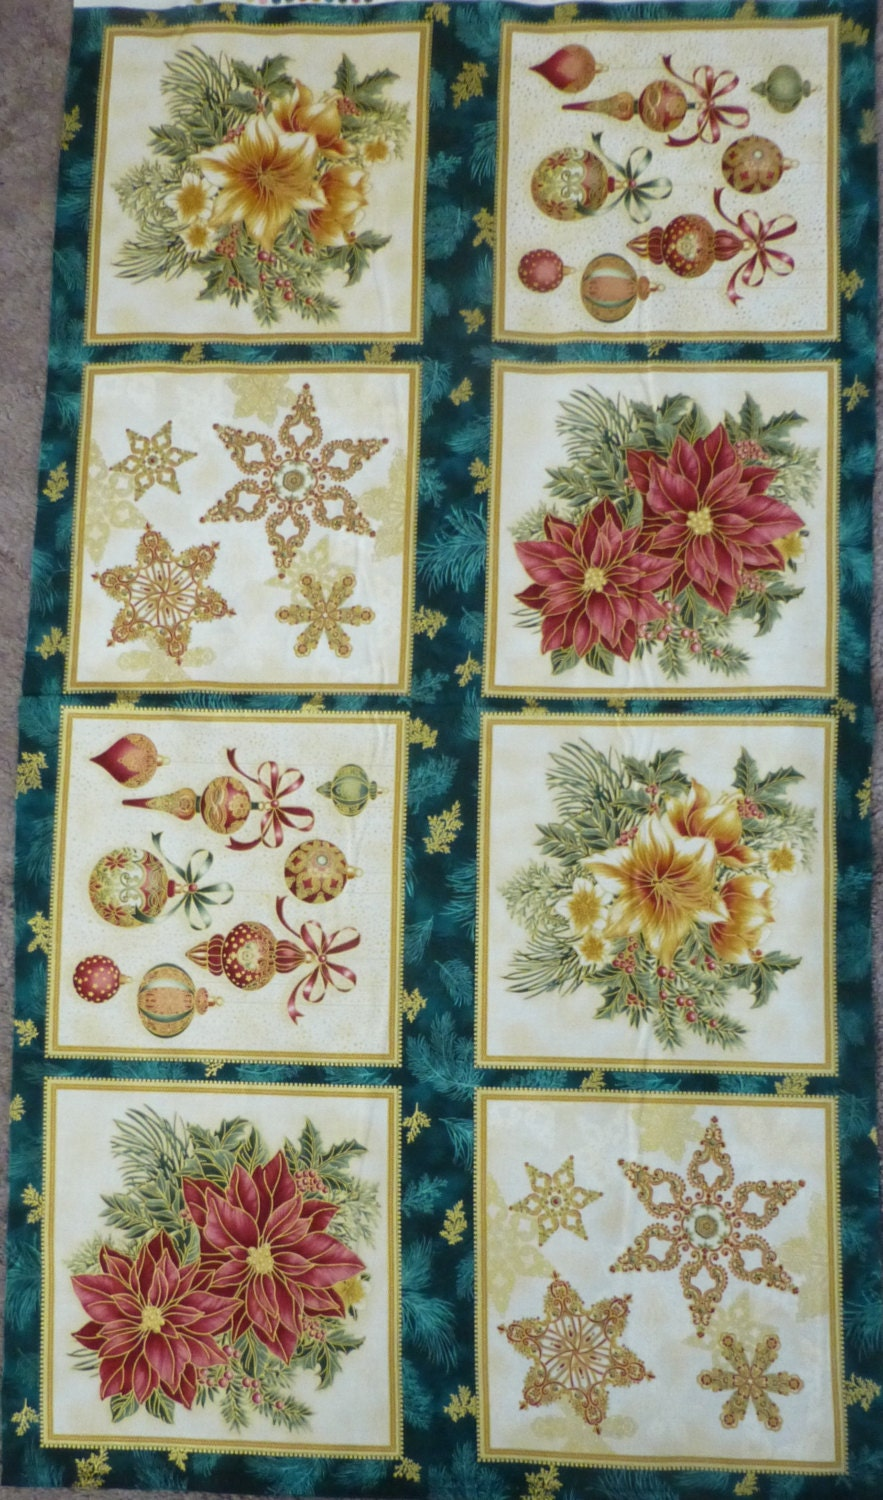 Cotton Fabric Home Decor Craft Fabric Christmas Panel Holiday Flourish 7 Robert Kaufman